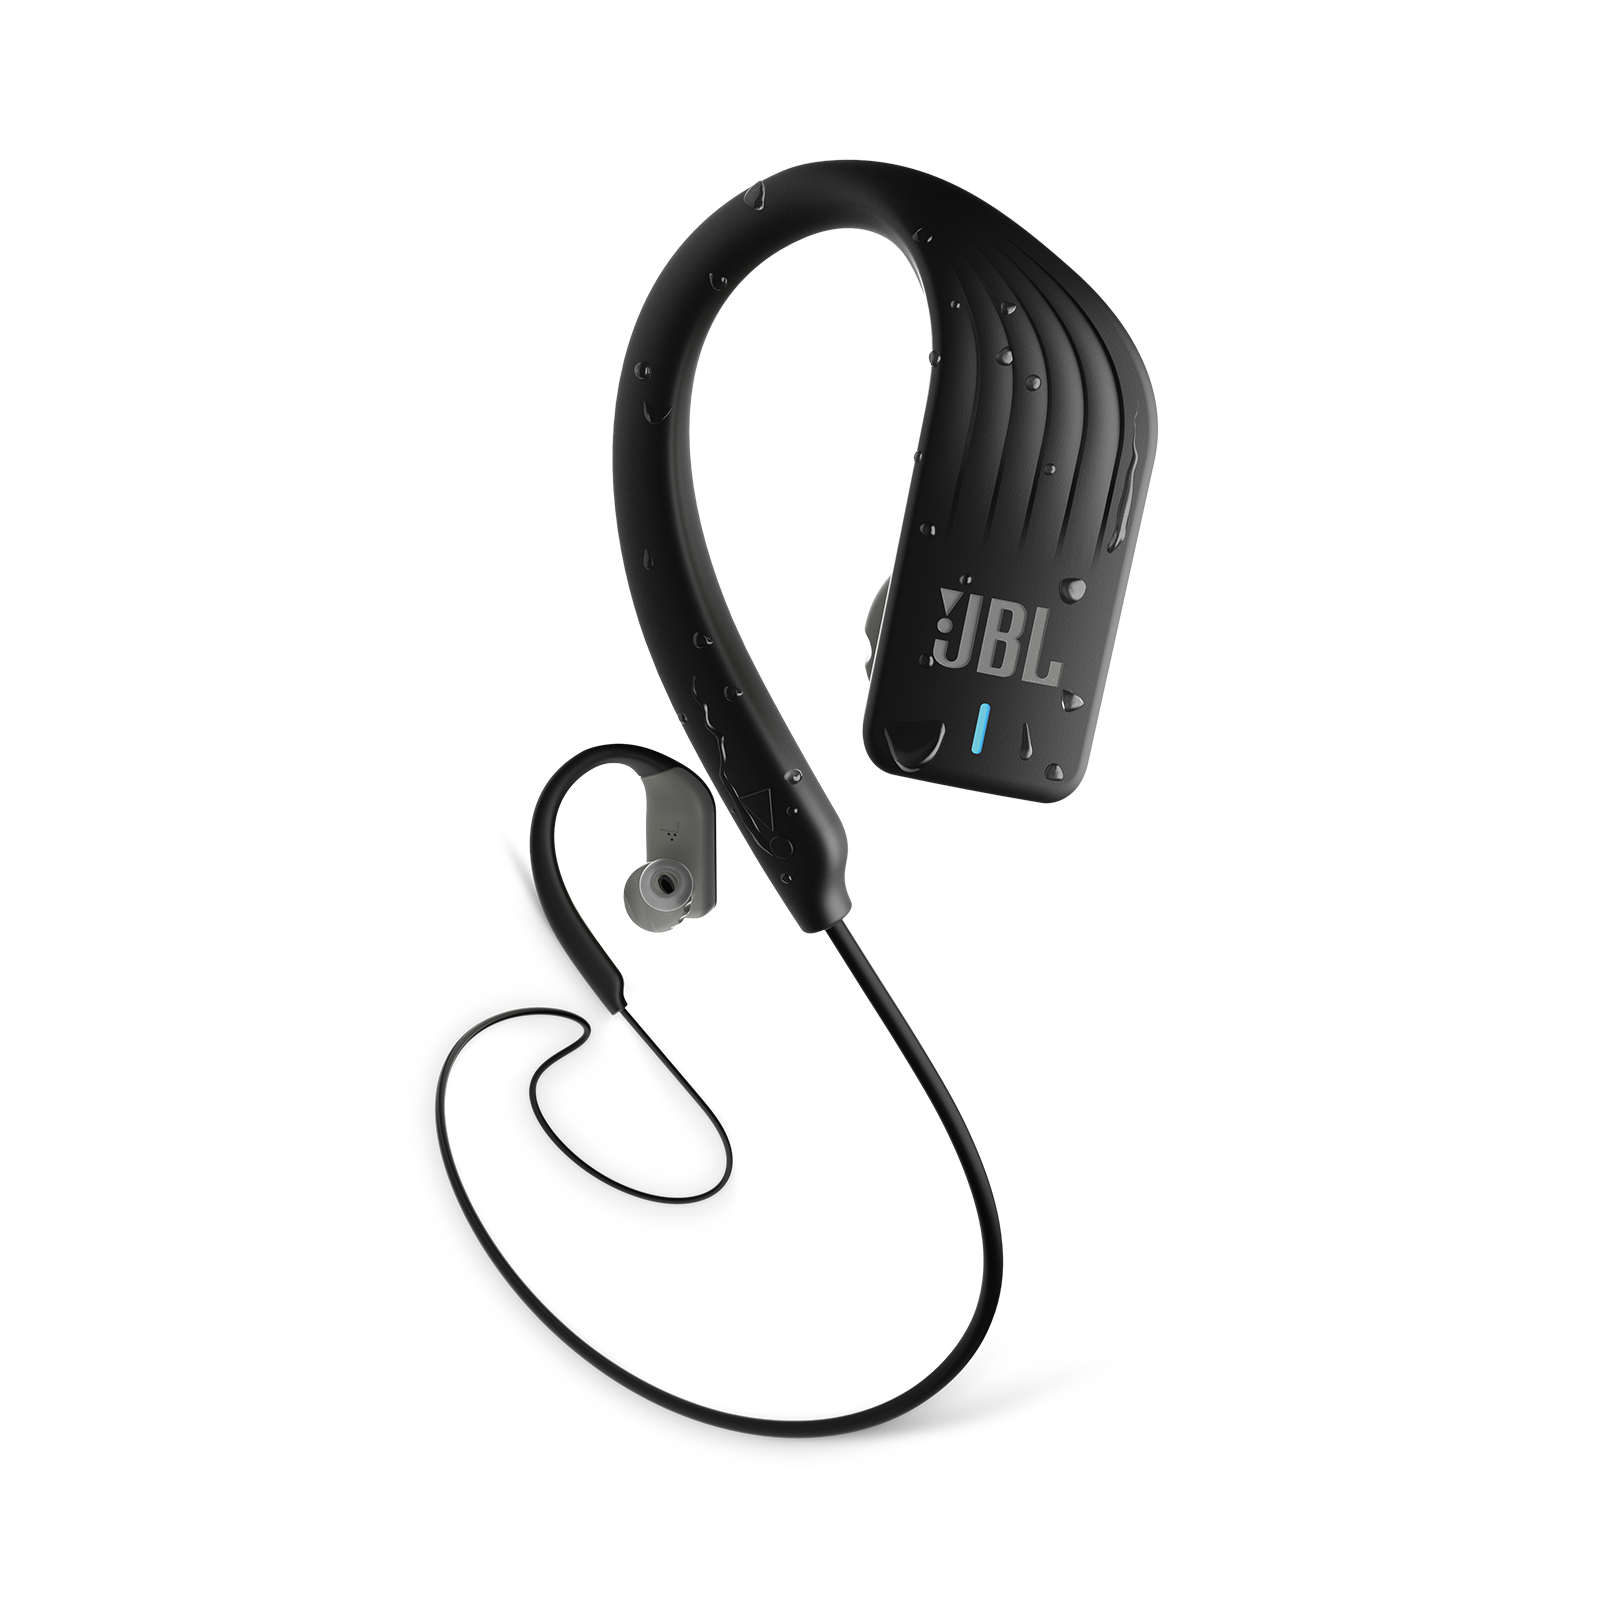 JBL Endurance SPRINT - Black - Waterproof Wireless In-Ear Sport Headphones - Hero